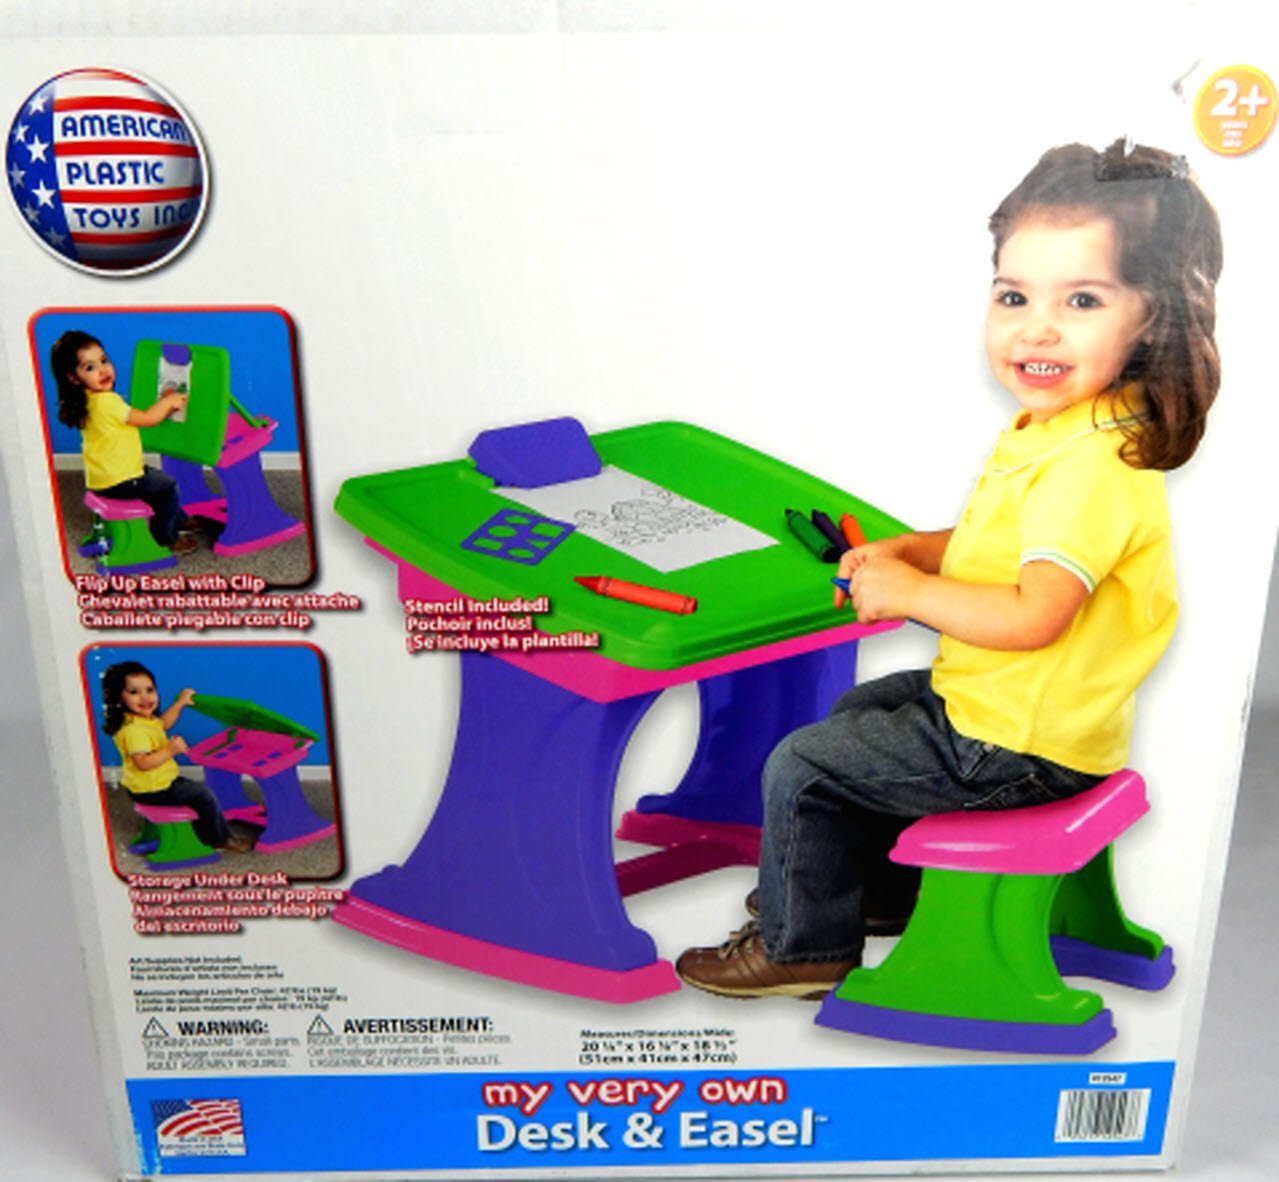 American Plastic Toys Desk and Easel Kids Art Drawing Table with Stool Storage Painting My Very Own Desk and Easel